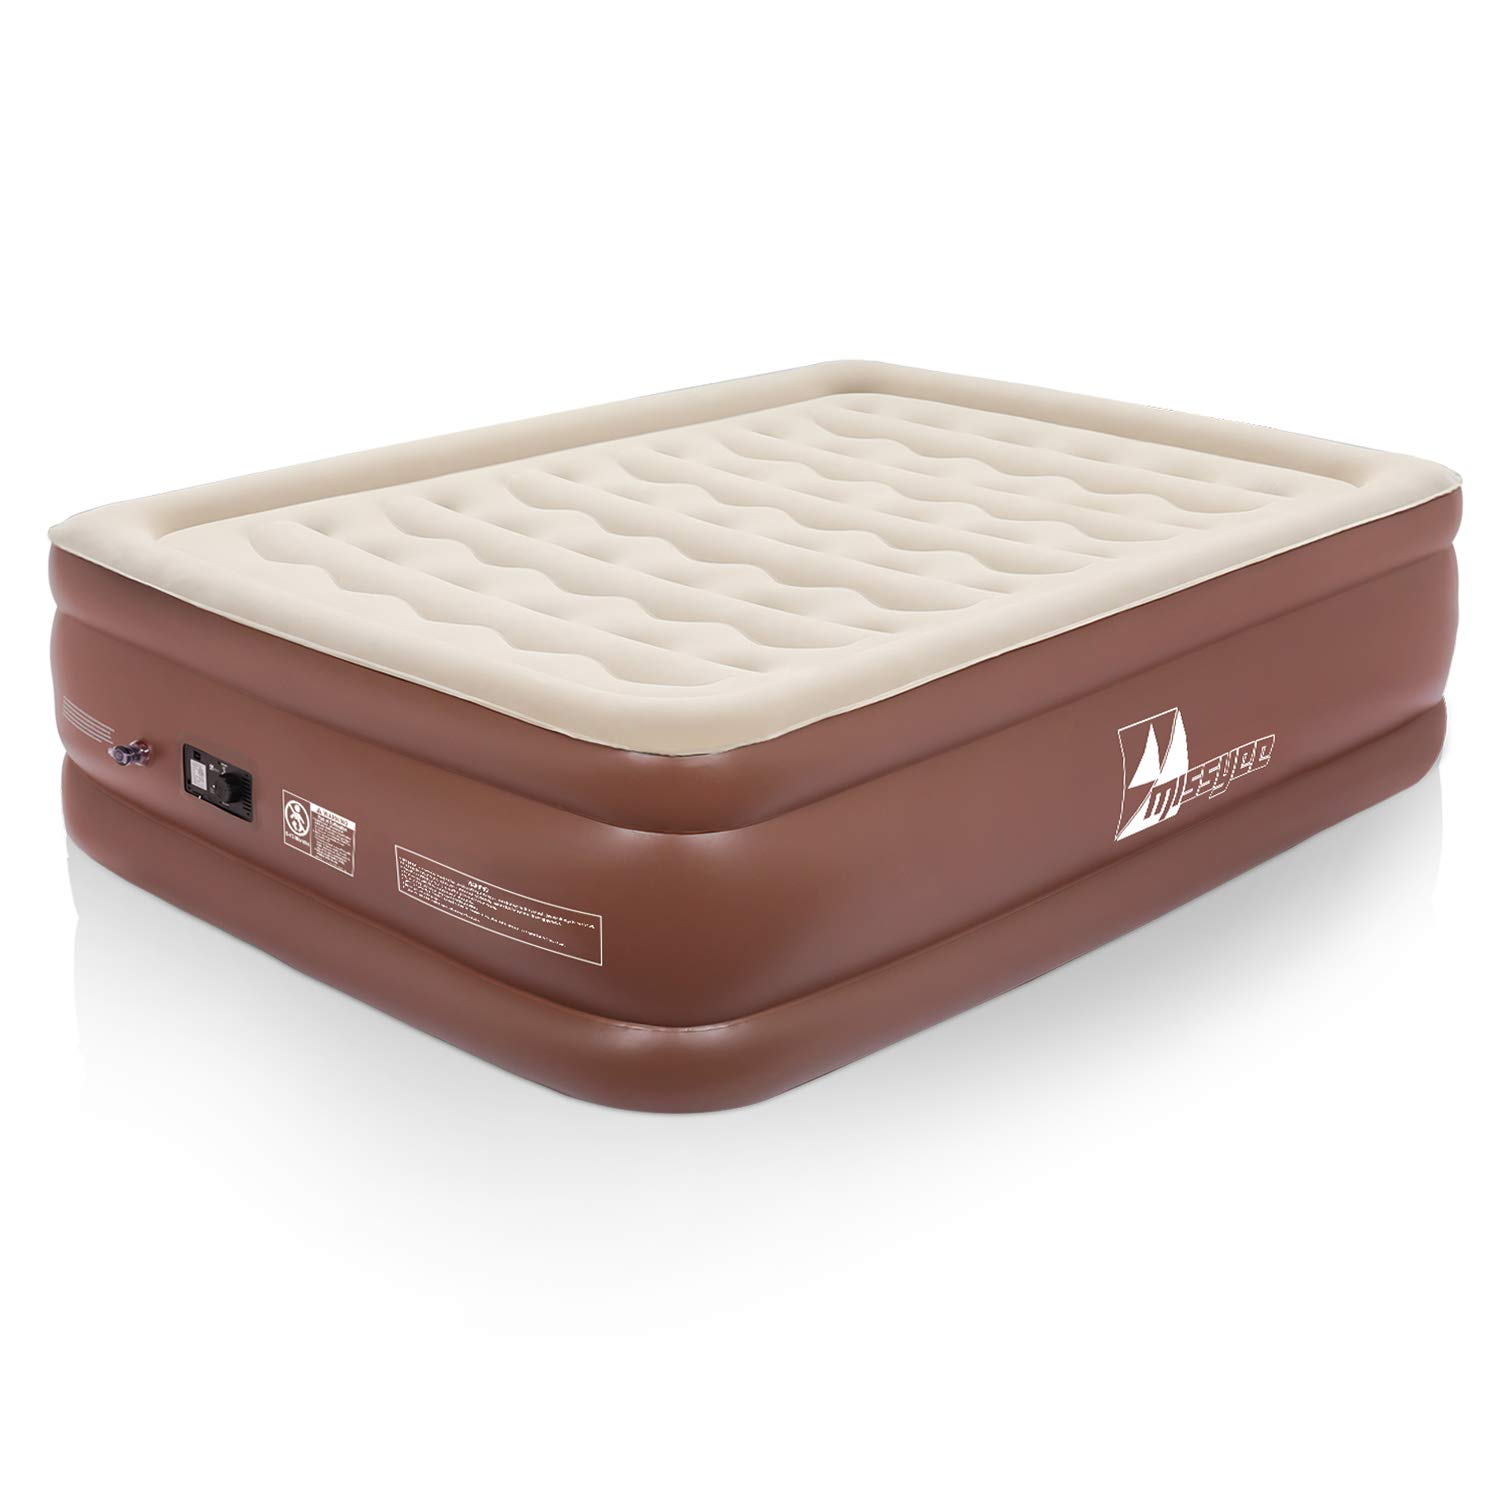 Missyee Inflatable Queen Air Mattress with Built-in Pump